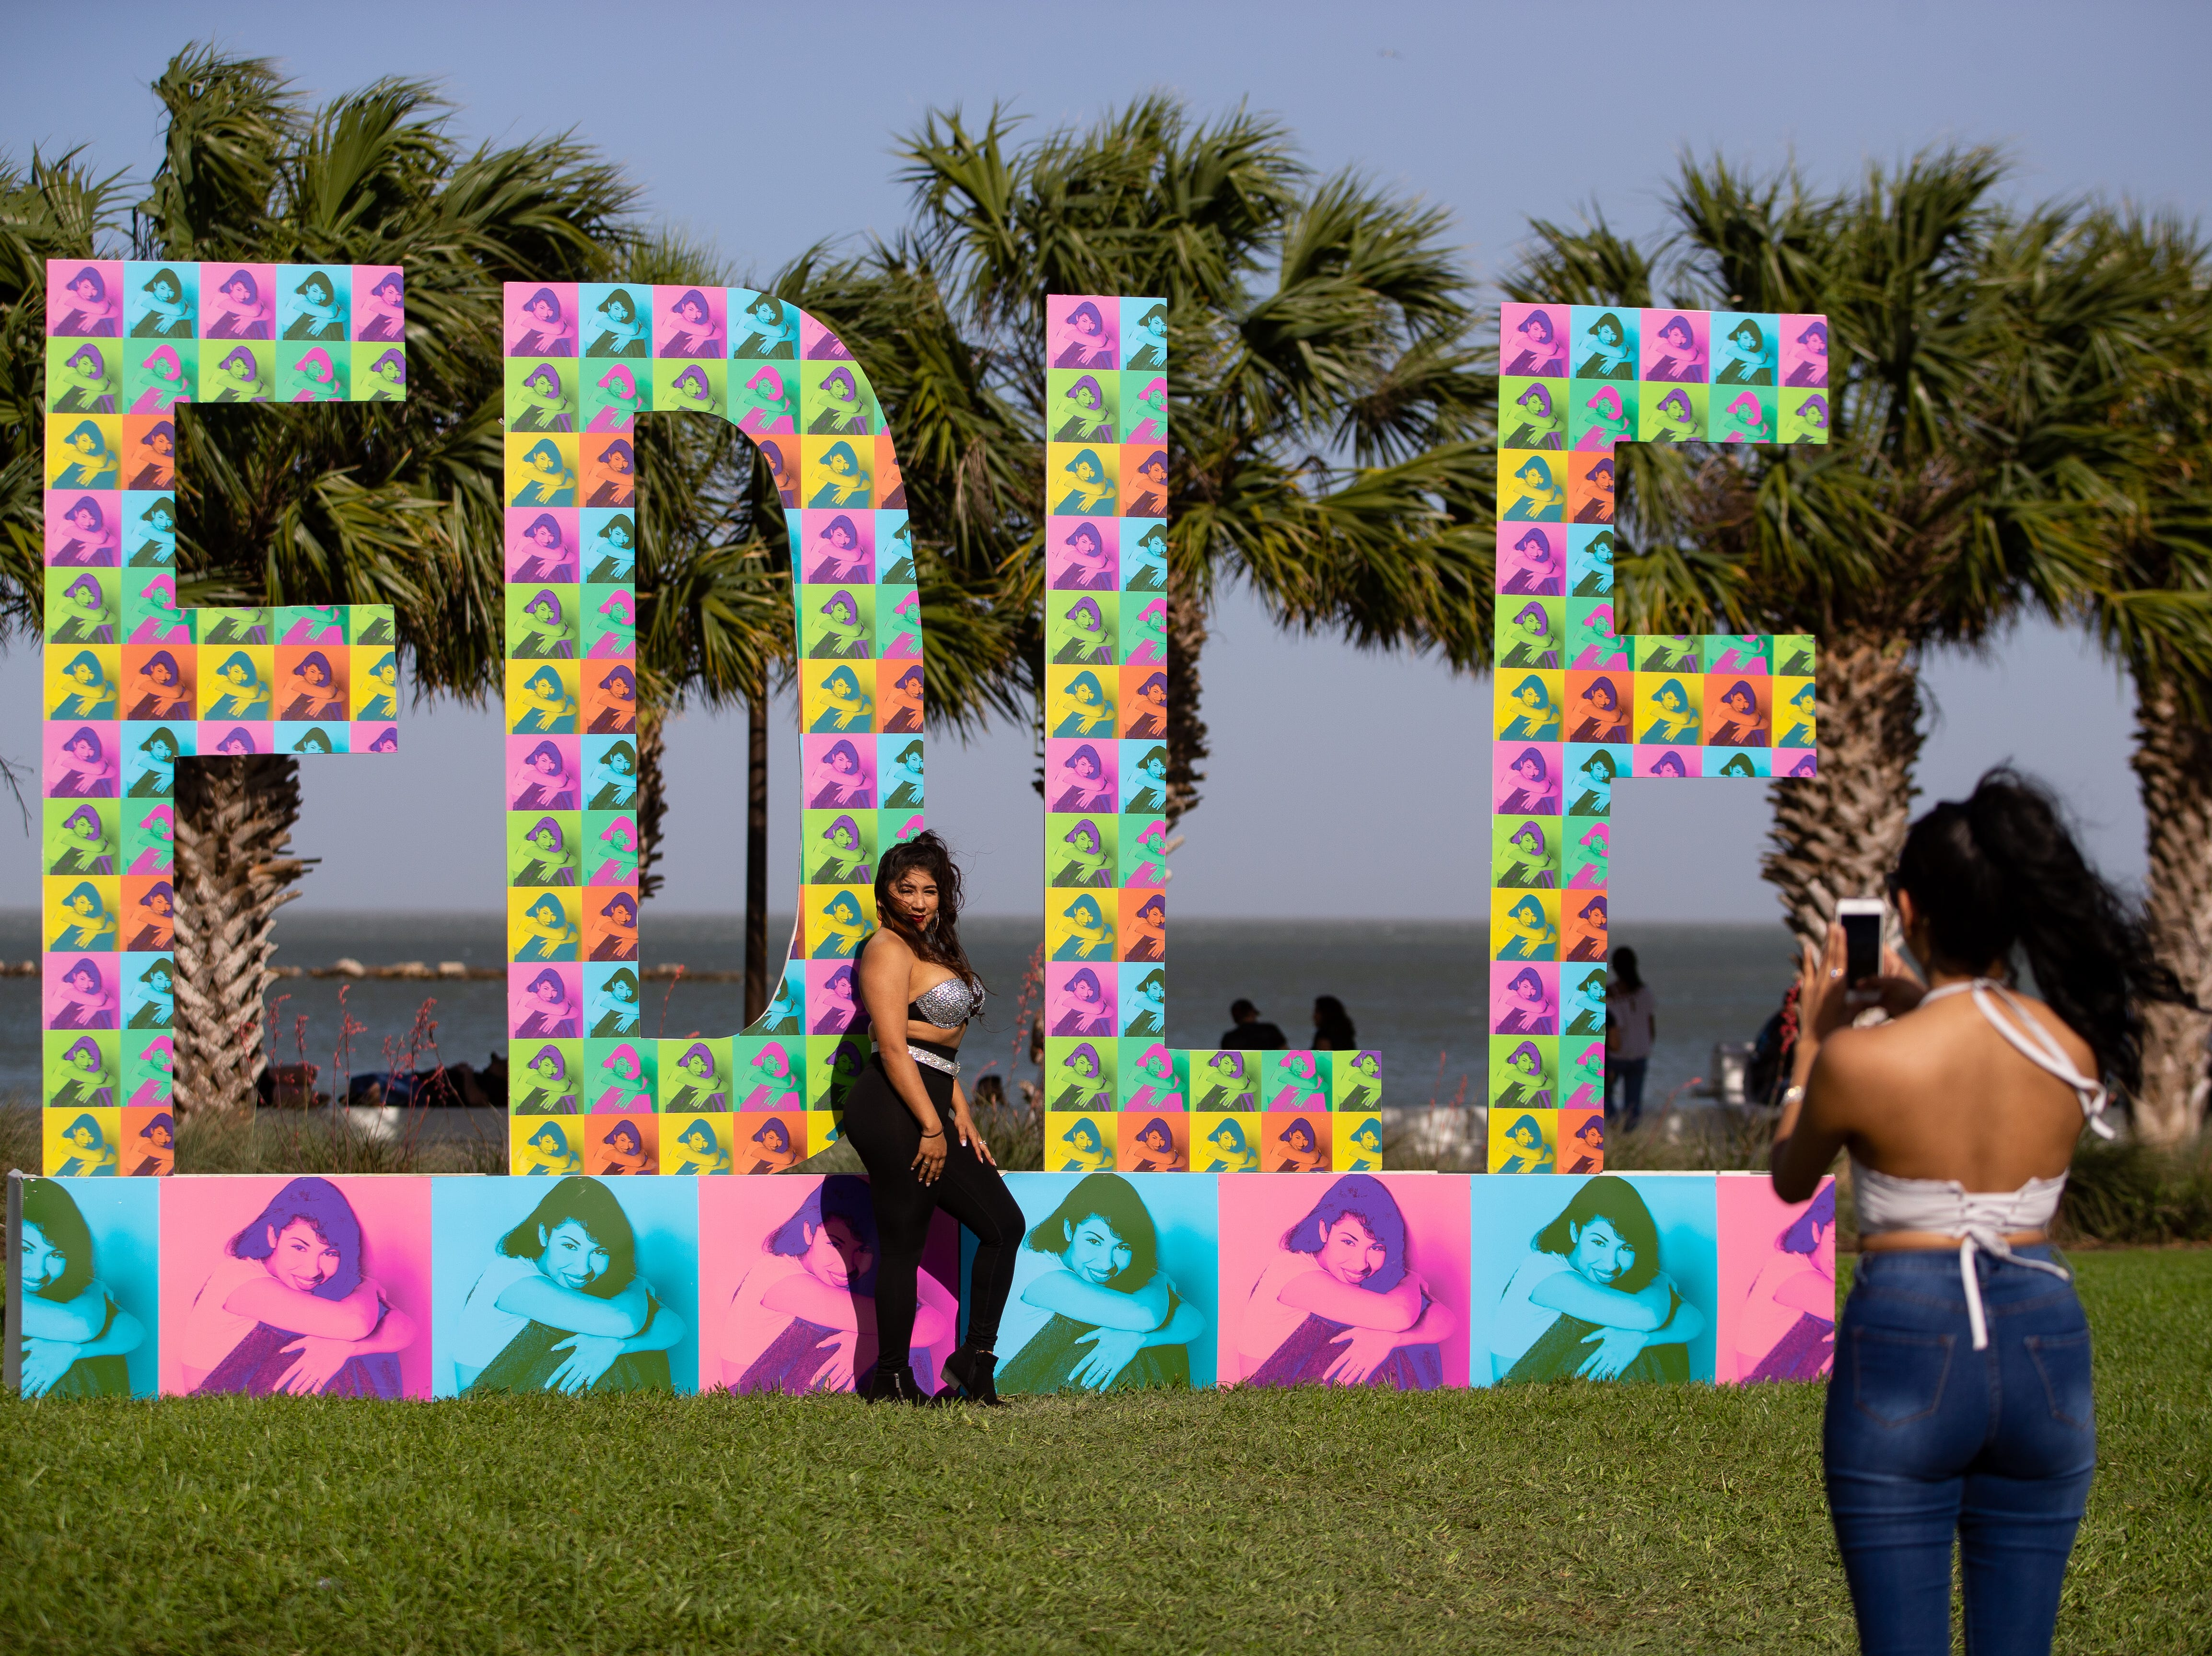 A women dressed as Selena has her photo taken during the second say of Fiesta de la Flor on Saturday, April 13, 2019.